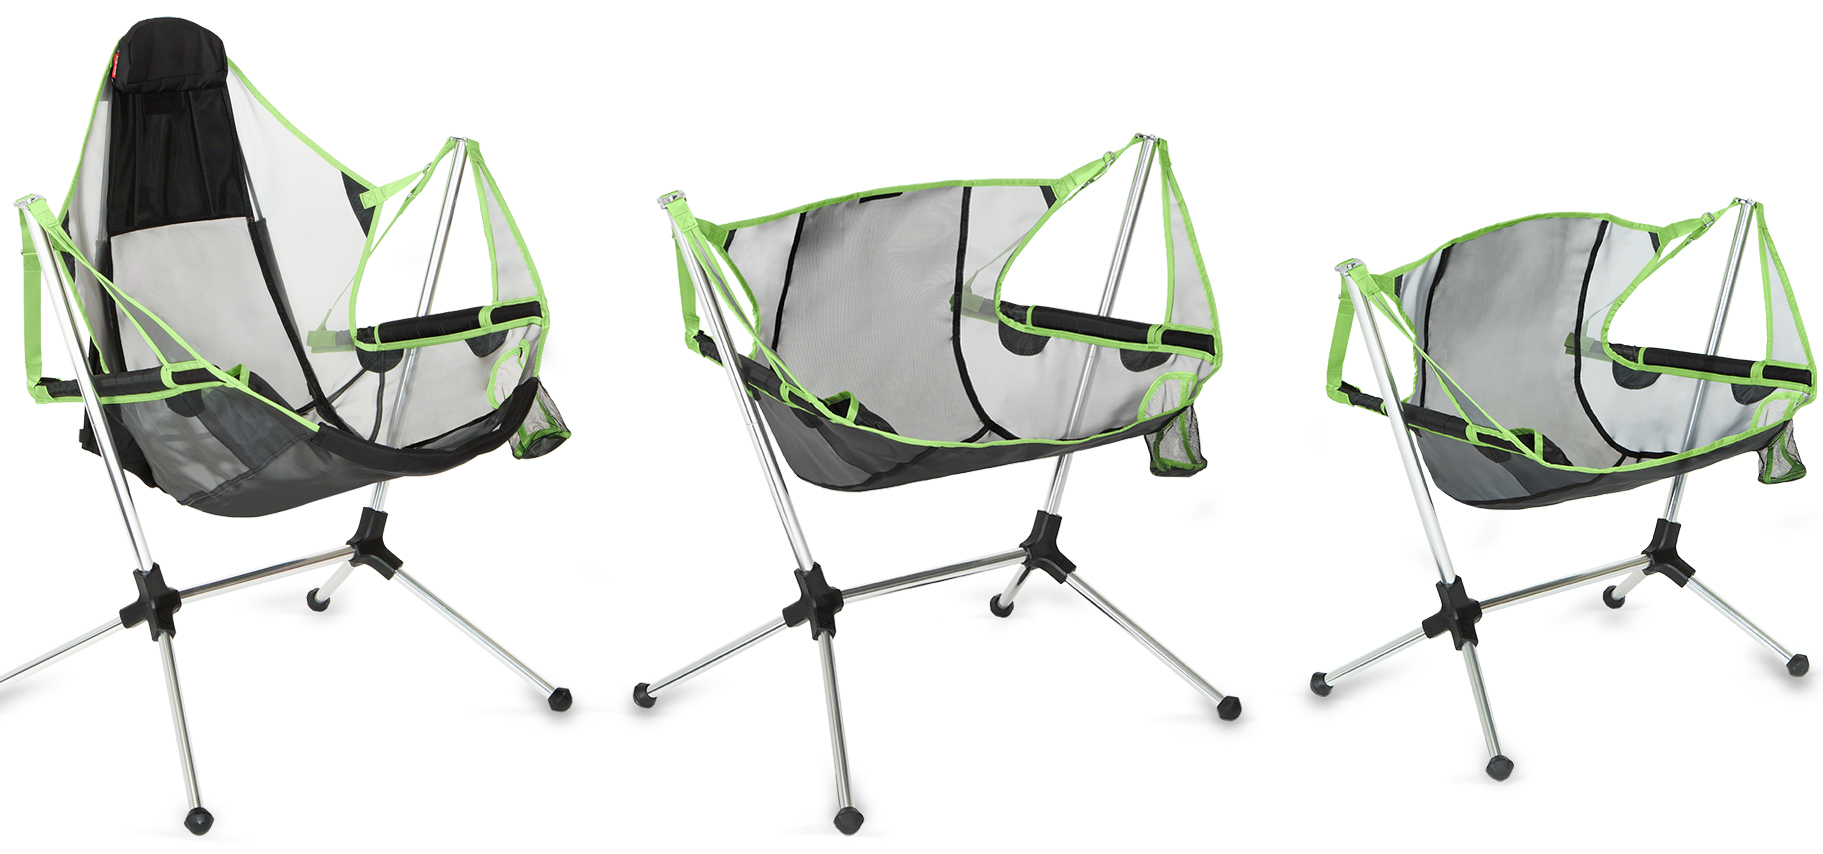 baby camping chair knotted melati hanging fall hazard nemo recalls thousands of stargaze camp chairs again recliner recall